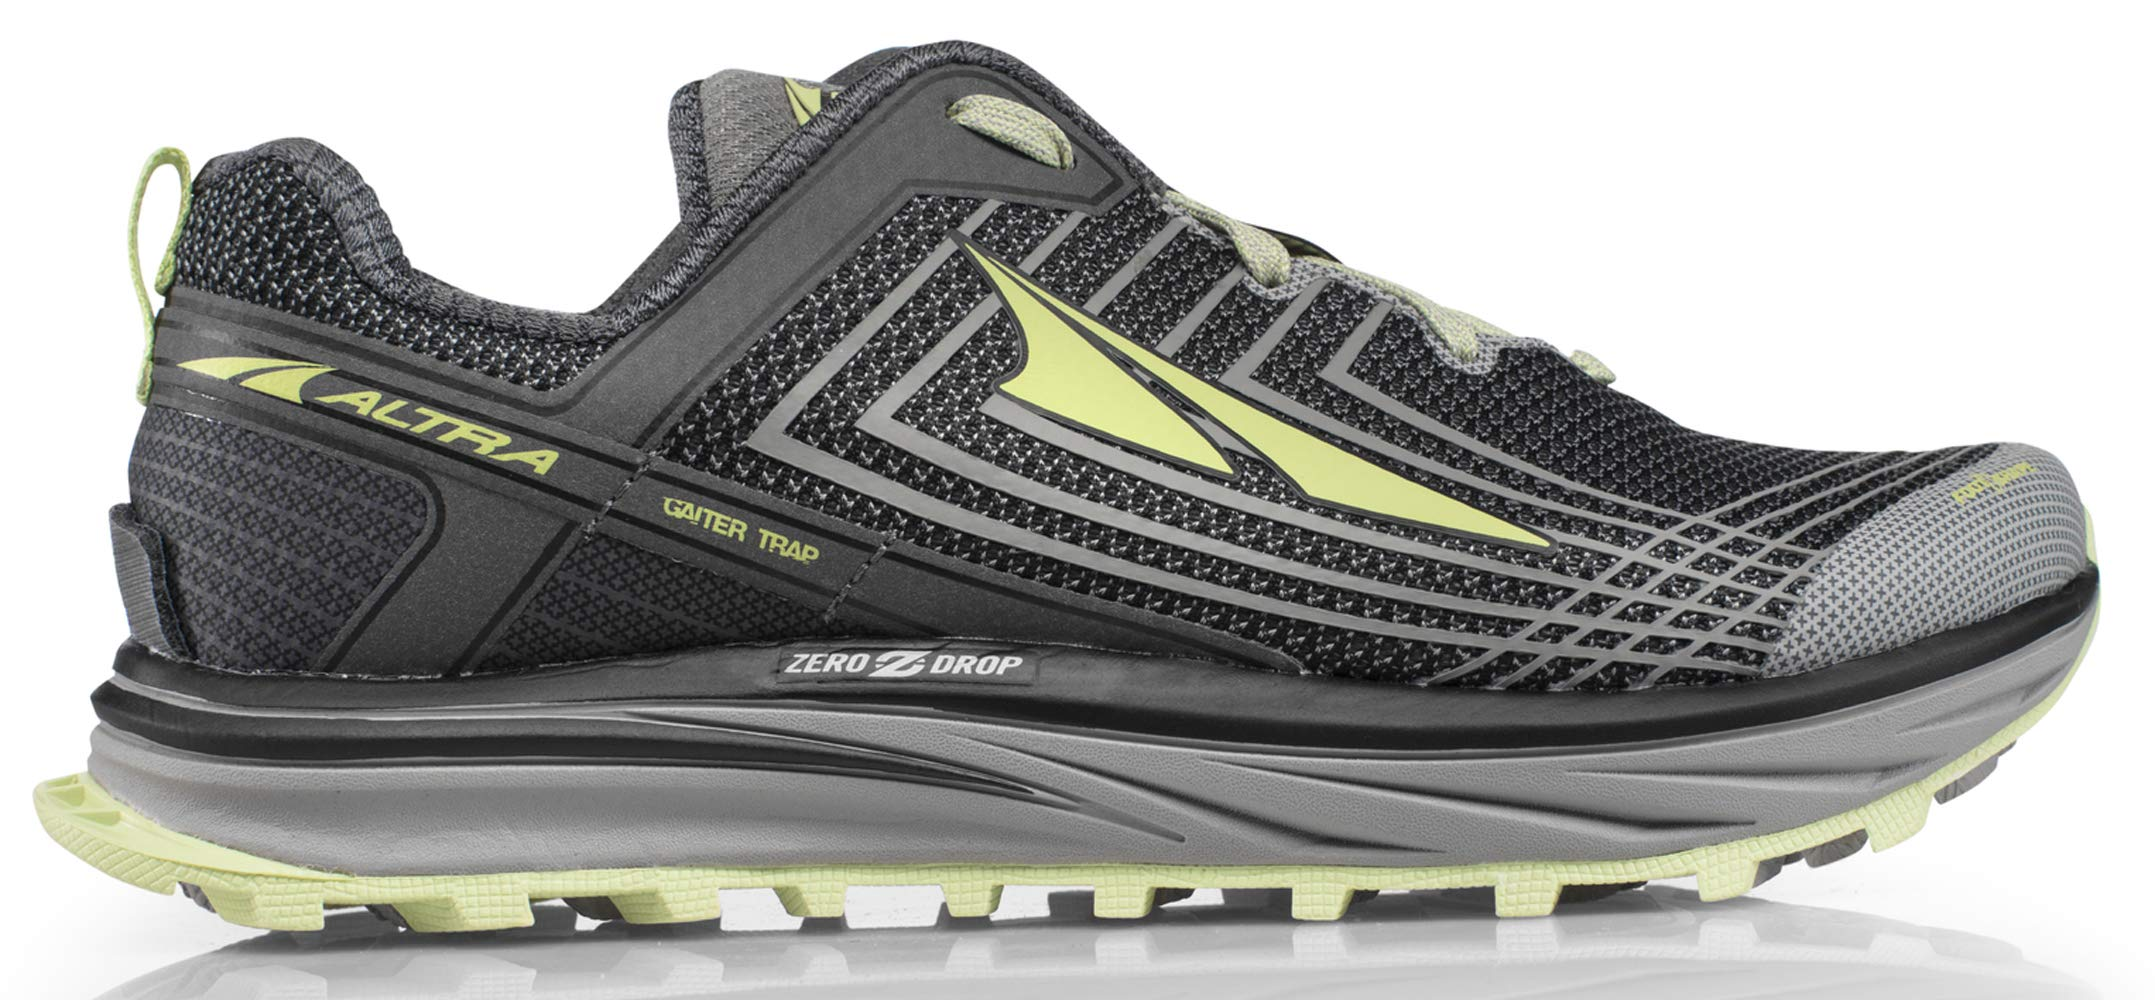 Altra AFW1957F Women's TIMP 1.5 Trail Running Shoe, Gray/Lime - 6 B(M) US